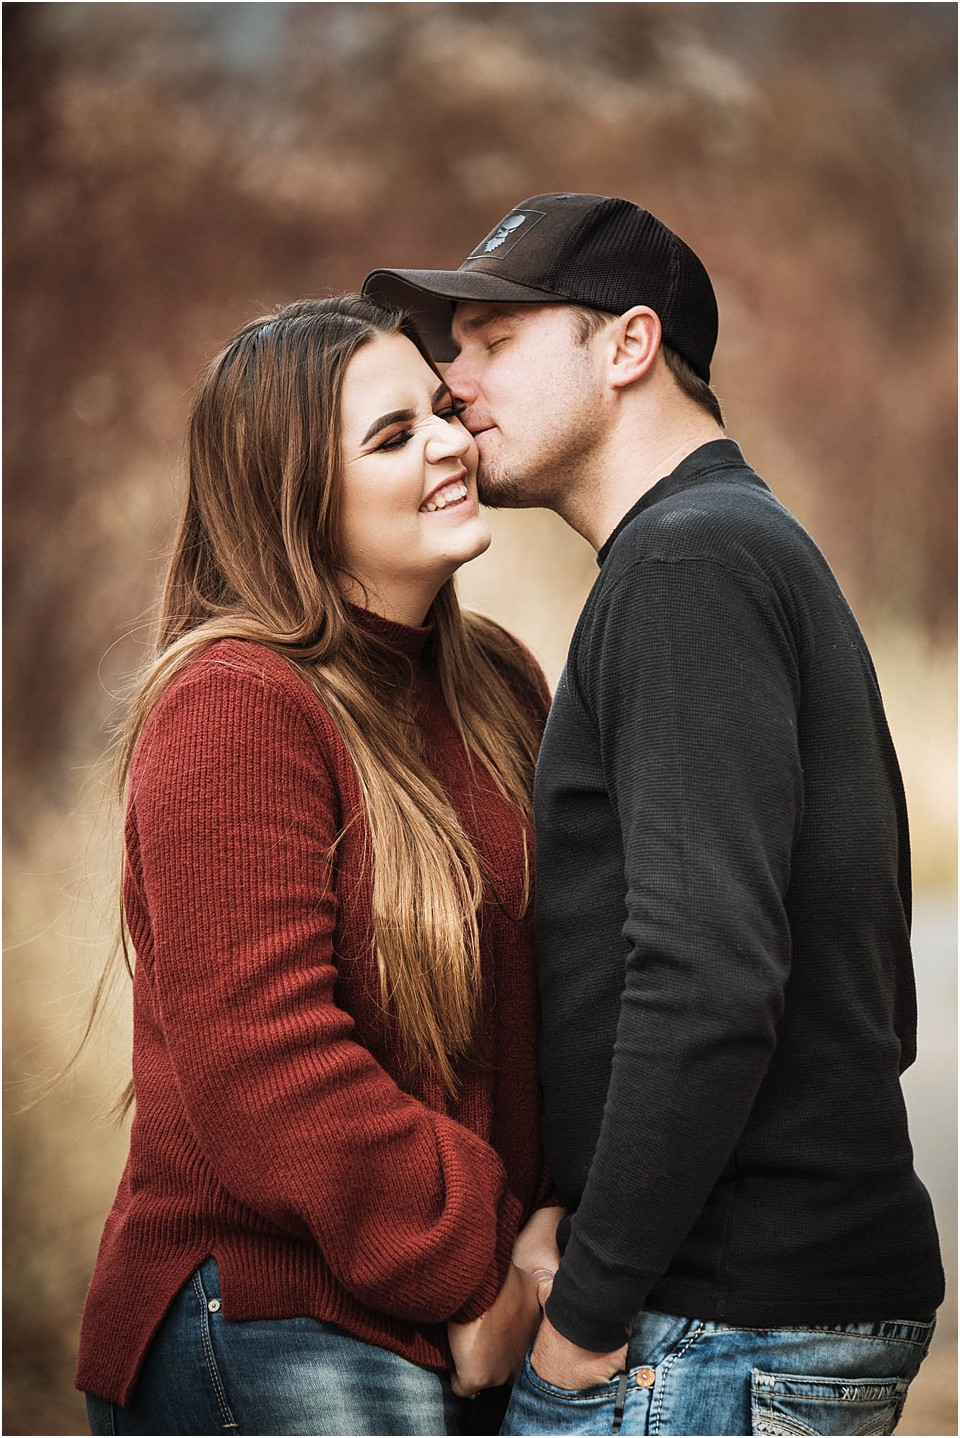 couple with guy kissing girl on the cheek